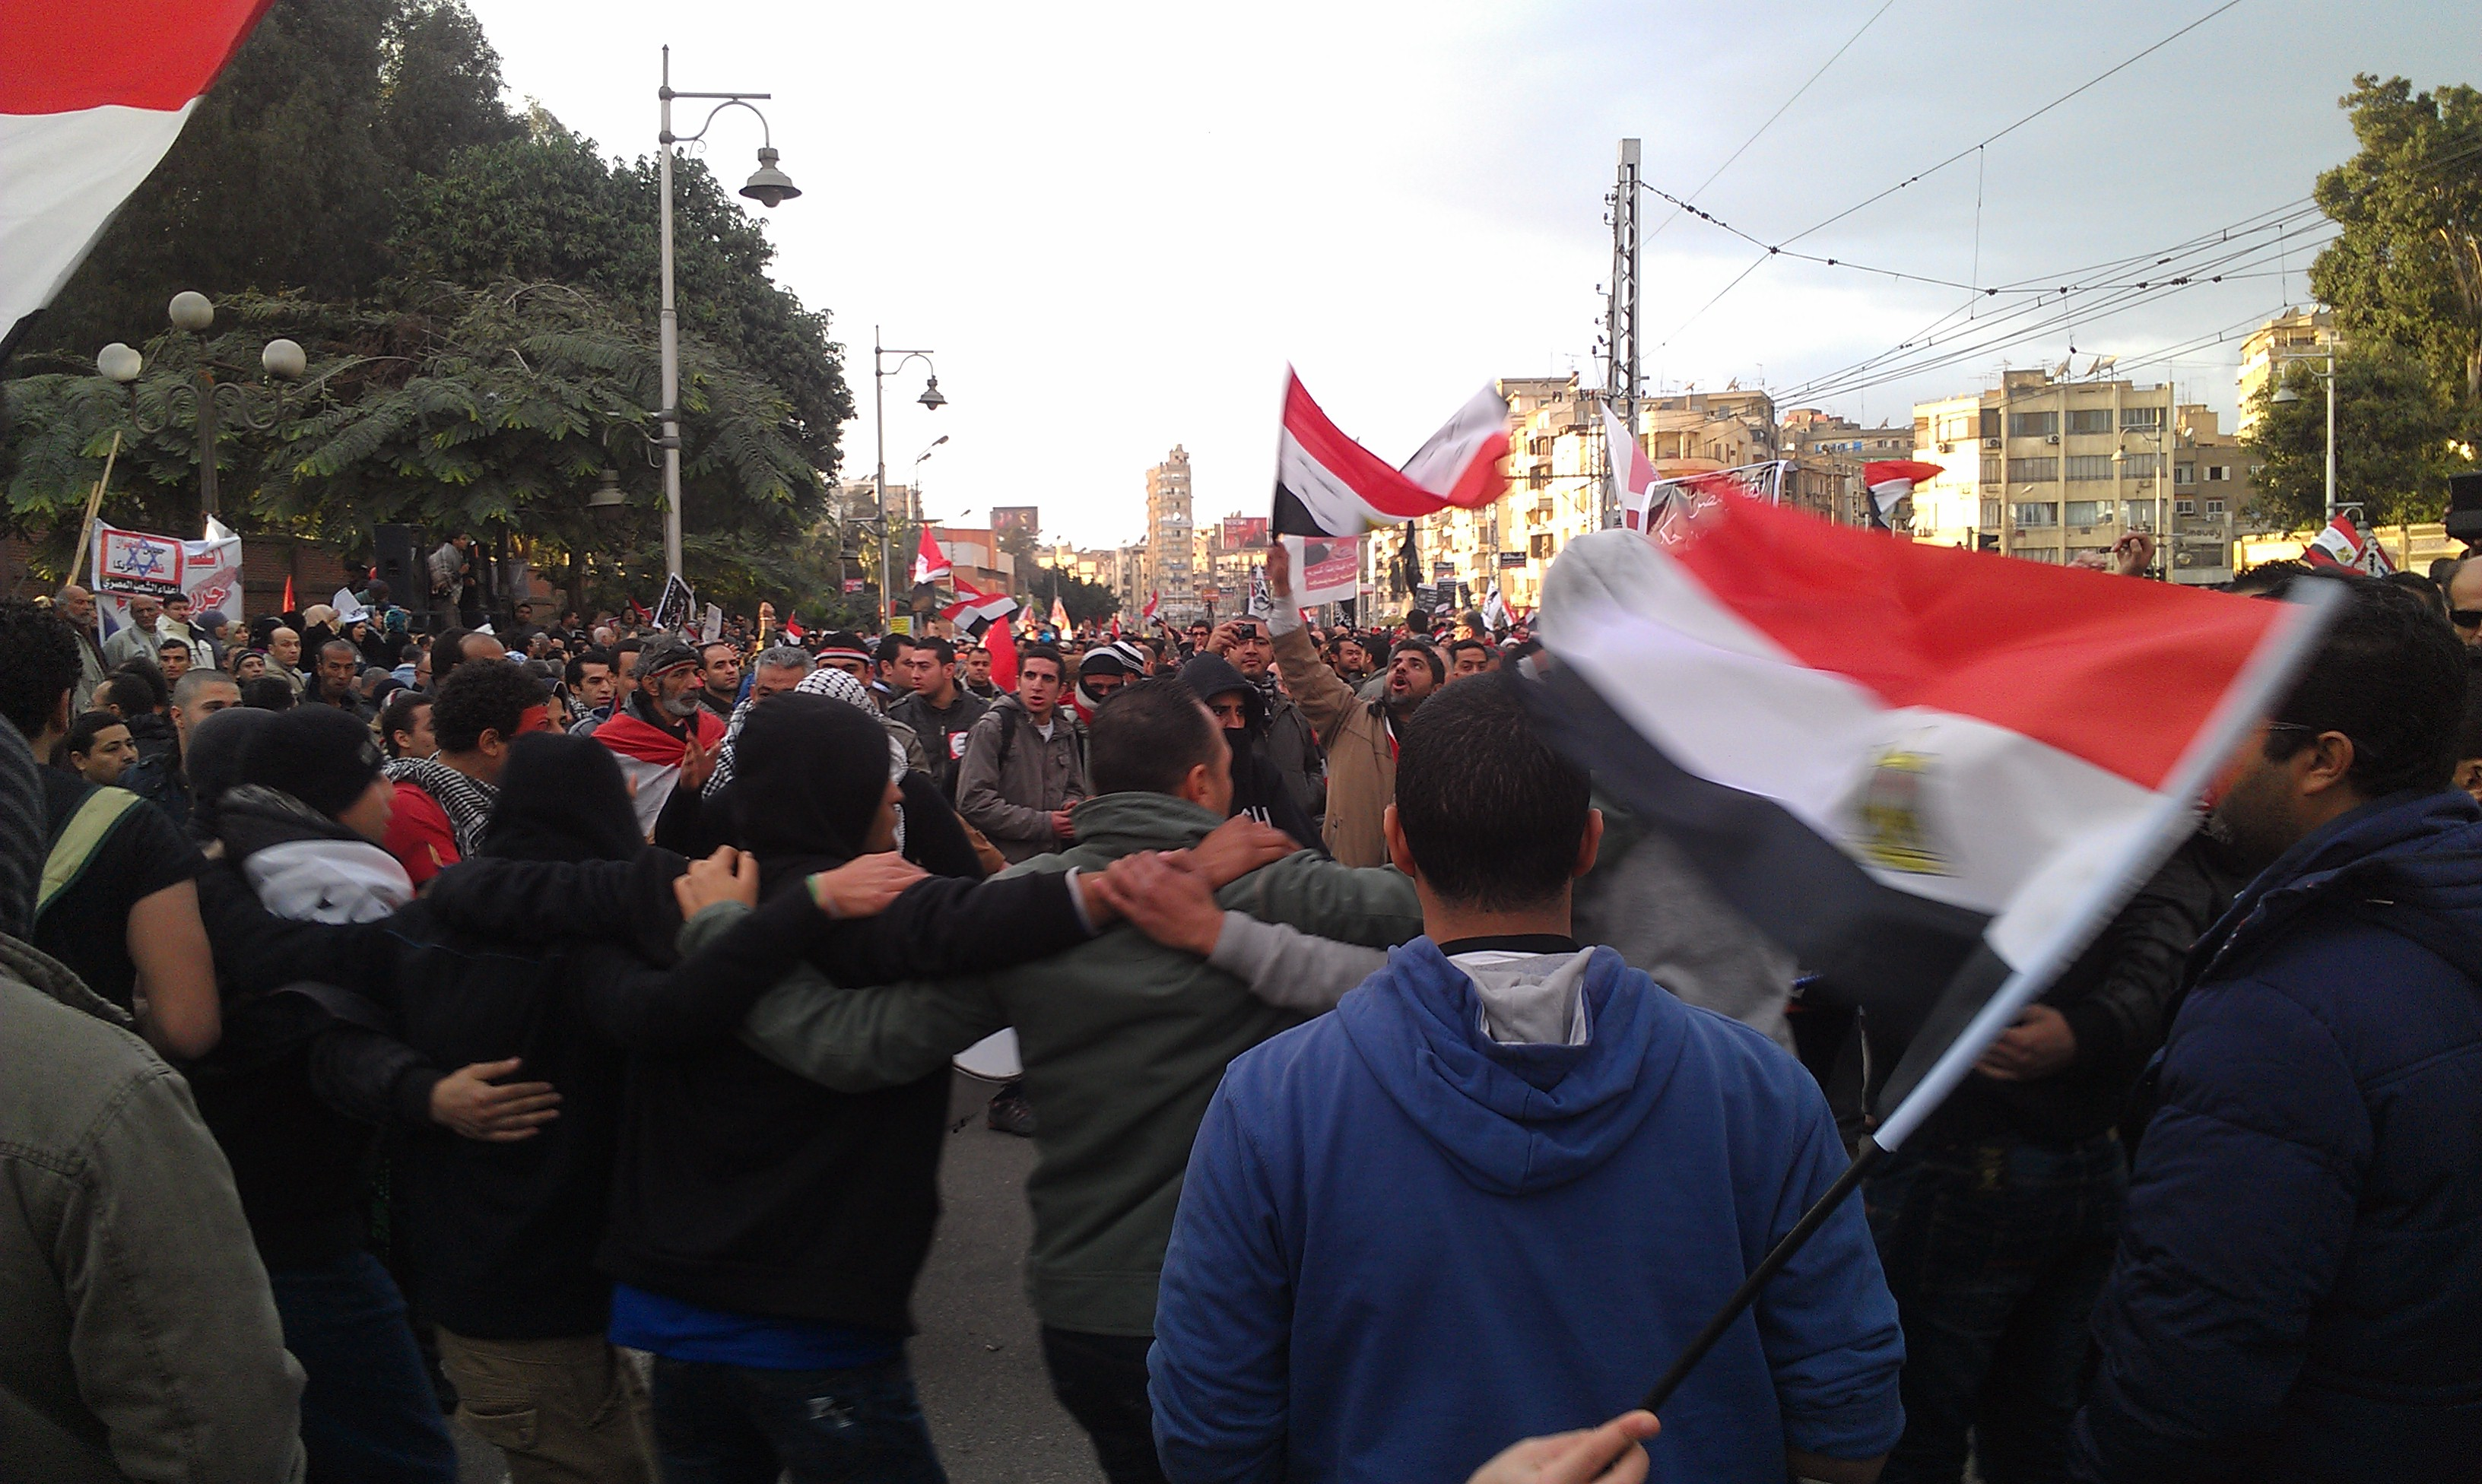 Egyptians sang and chanted against Morsi and the Muslim Brotherhood.